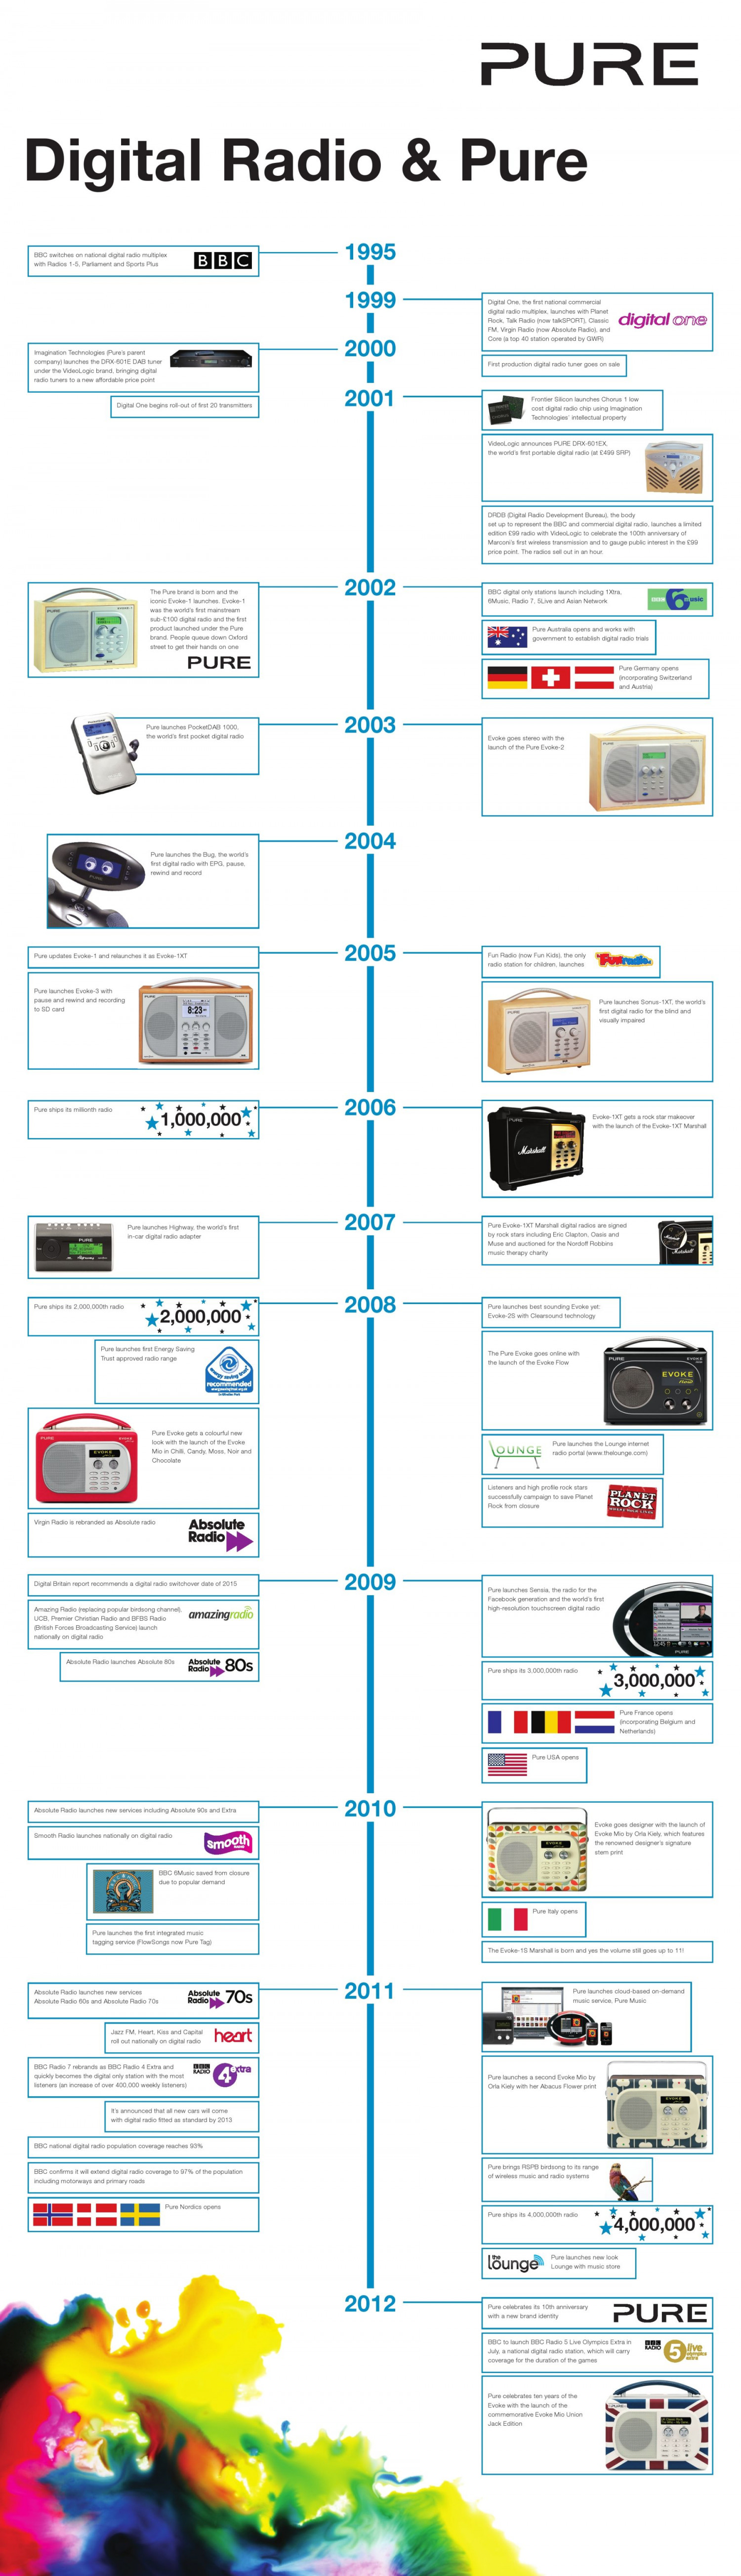 Digital radio and Pure Infographic